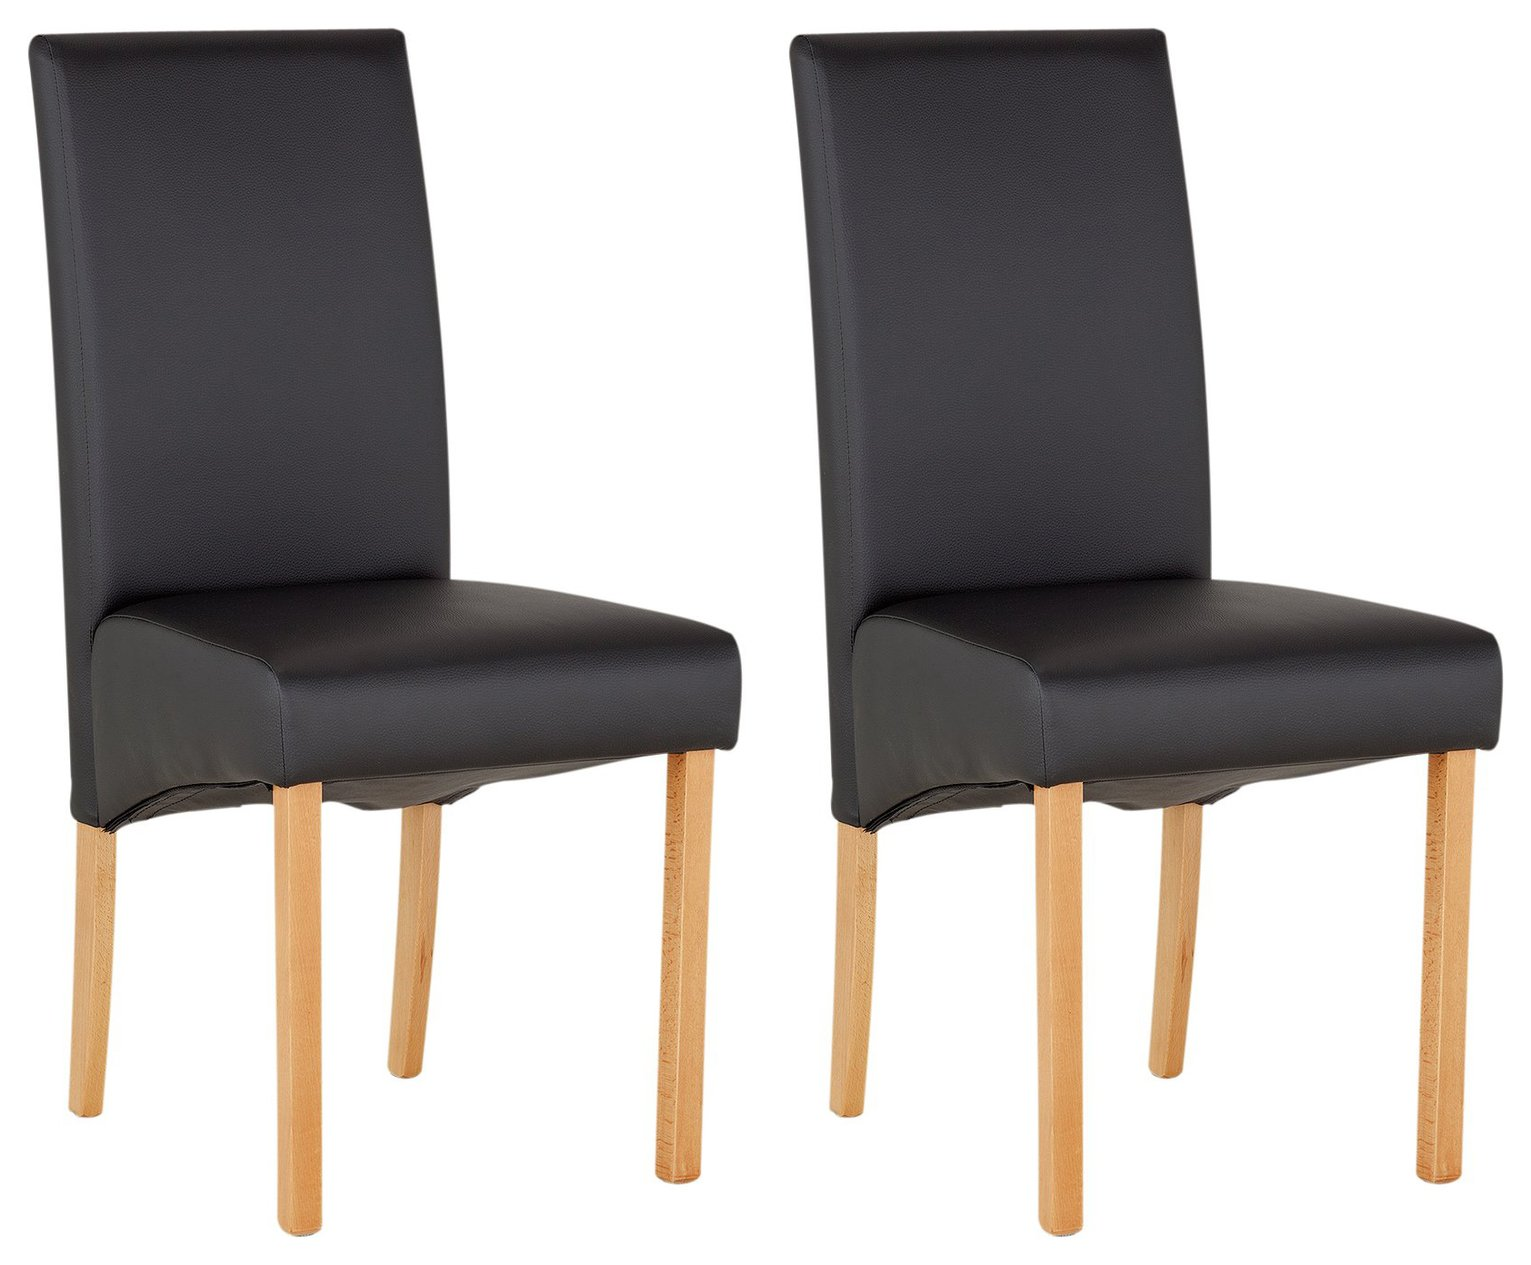 Collection Pair of Skirted Dining Chairs - Black